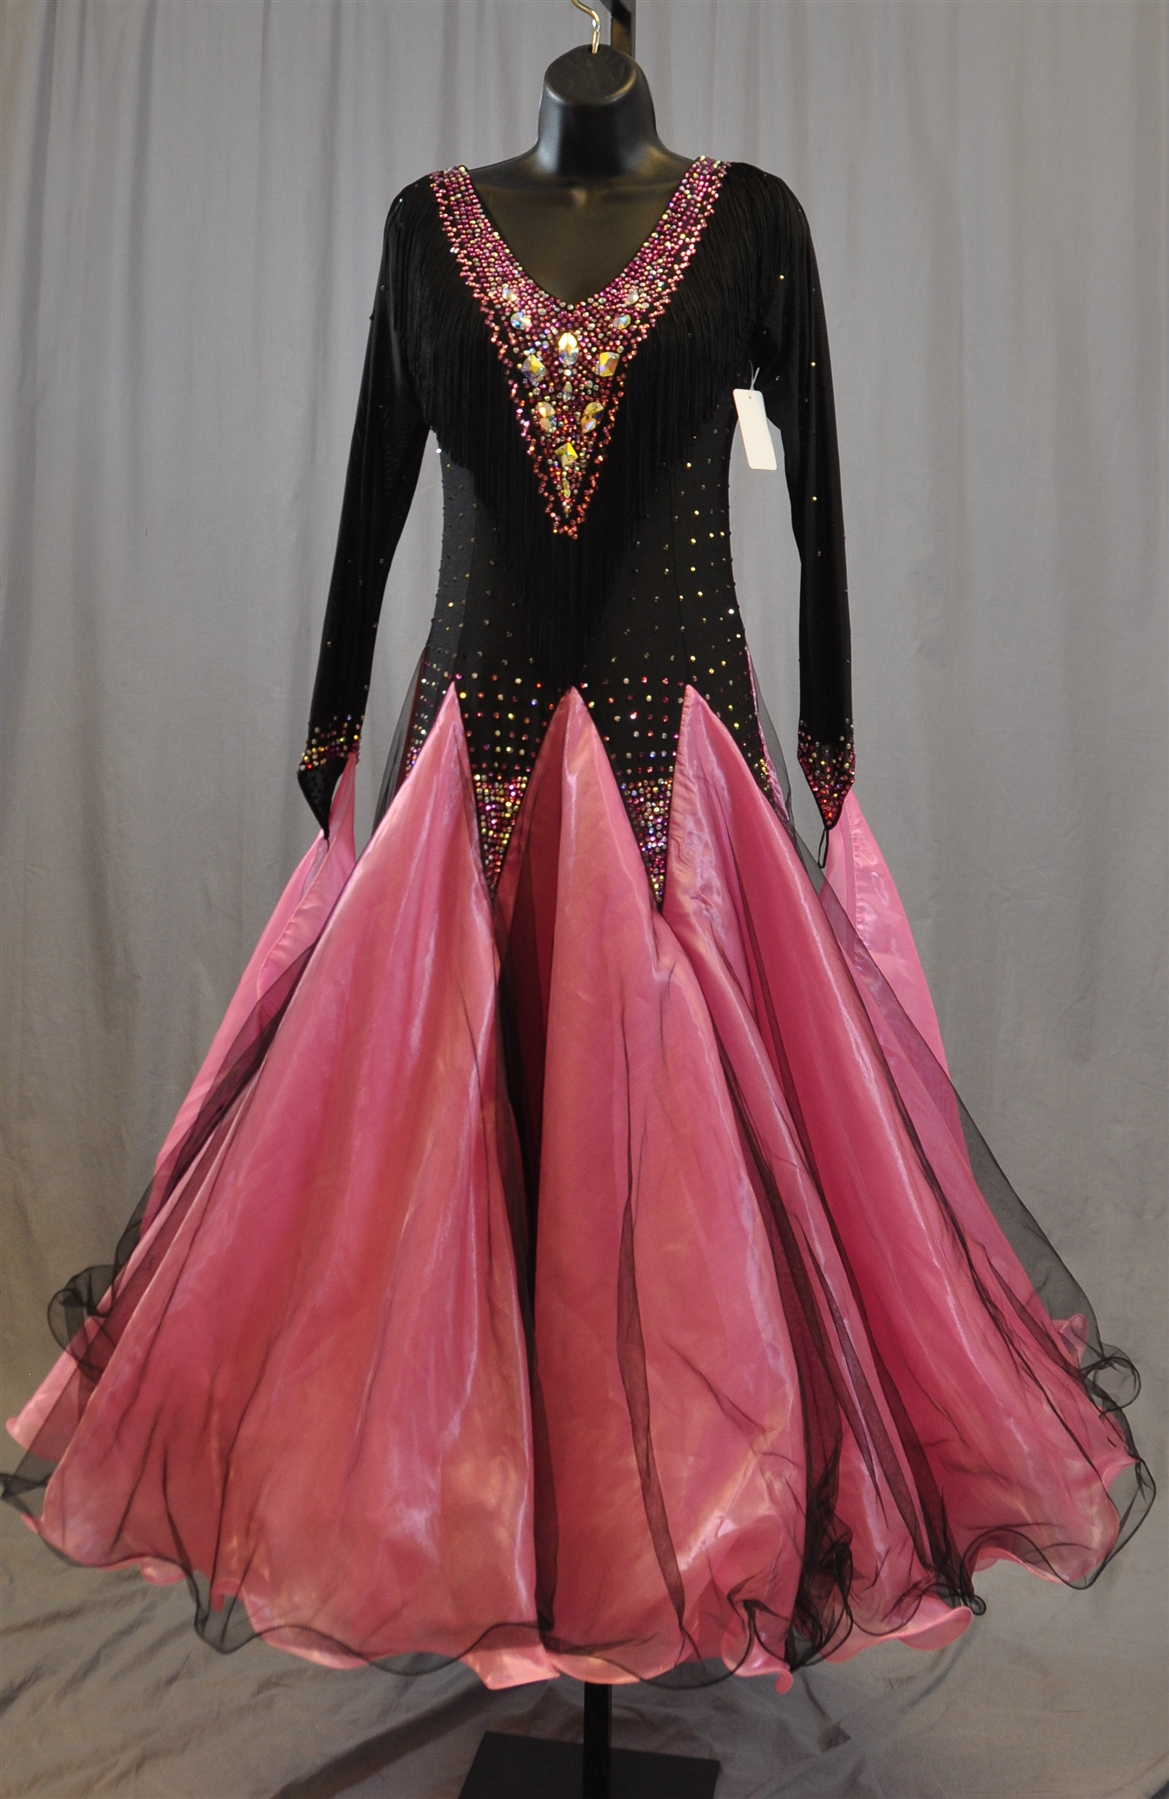 Elegant Black And Pink Long Sleeves Fringe Ballroom Dress